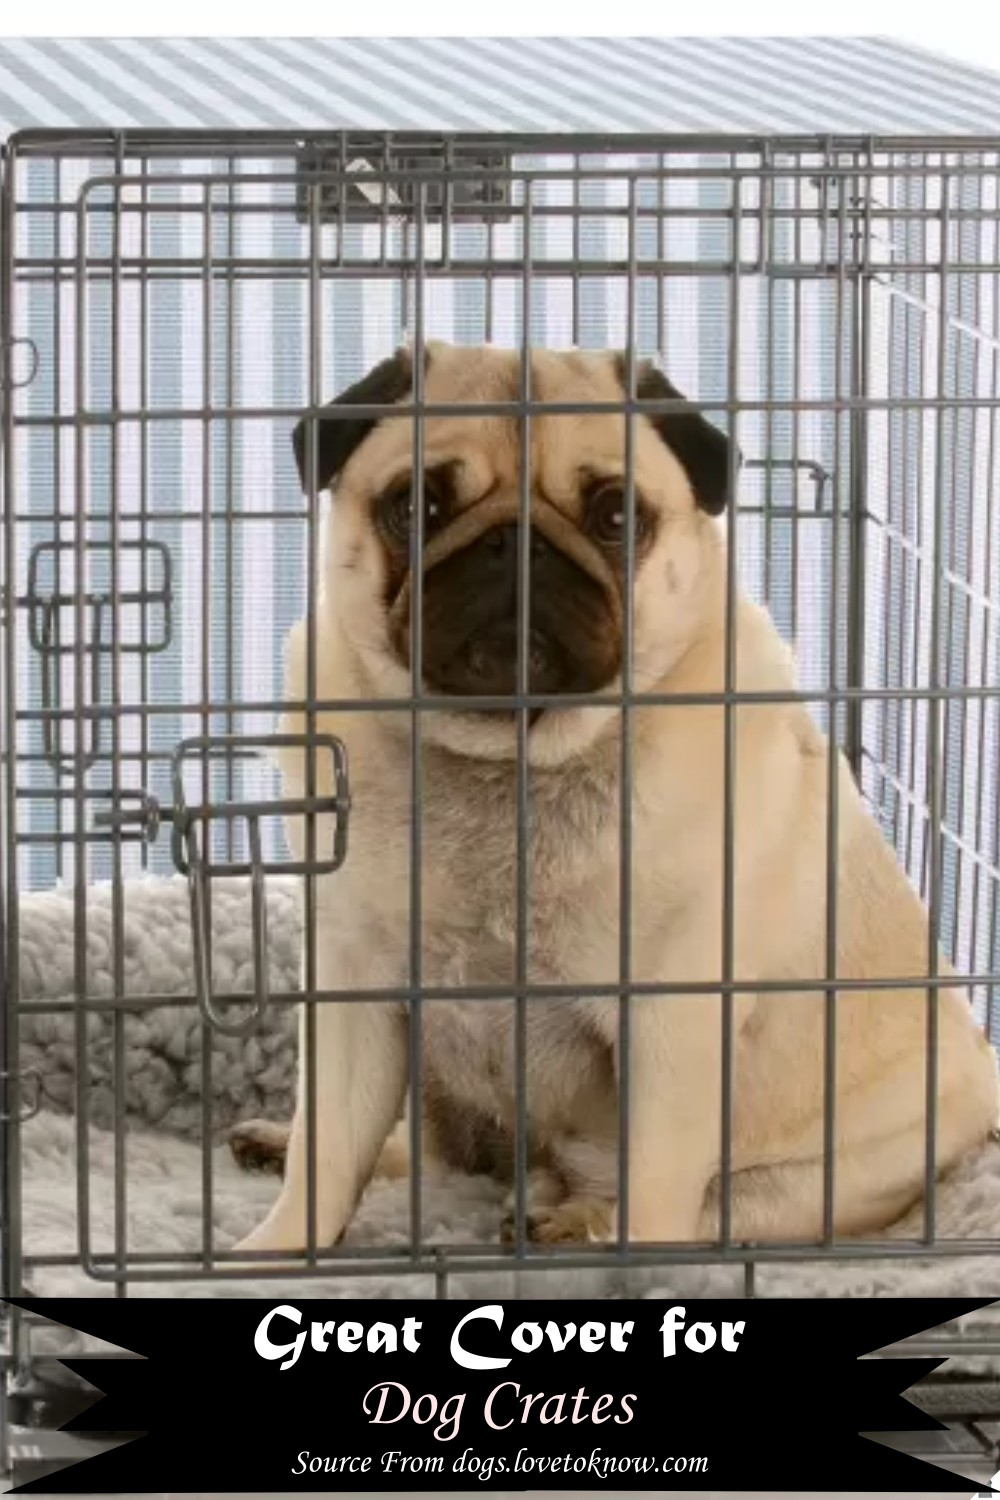 Great Cover for Dog Crates